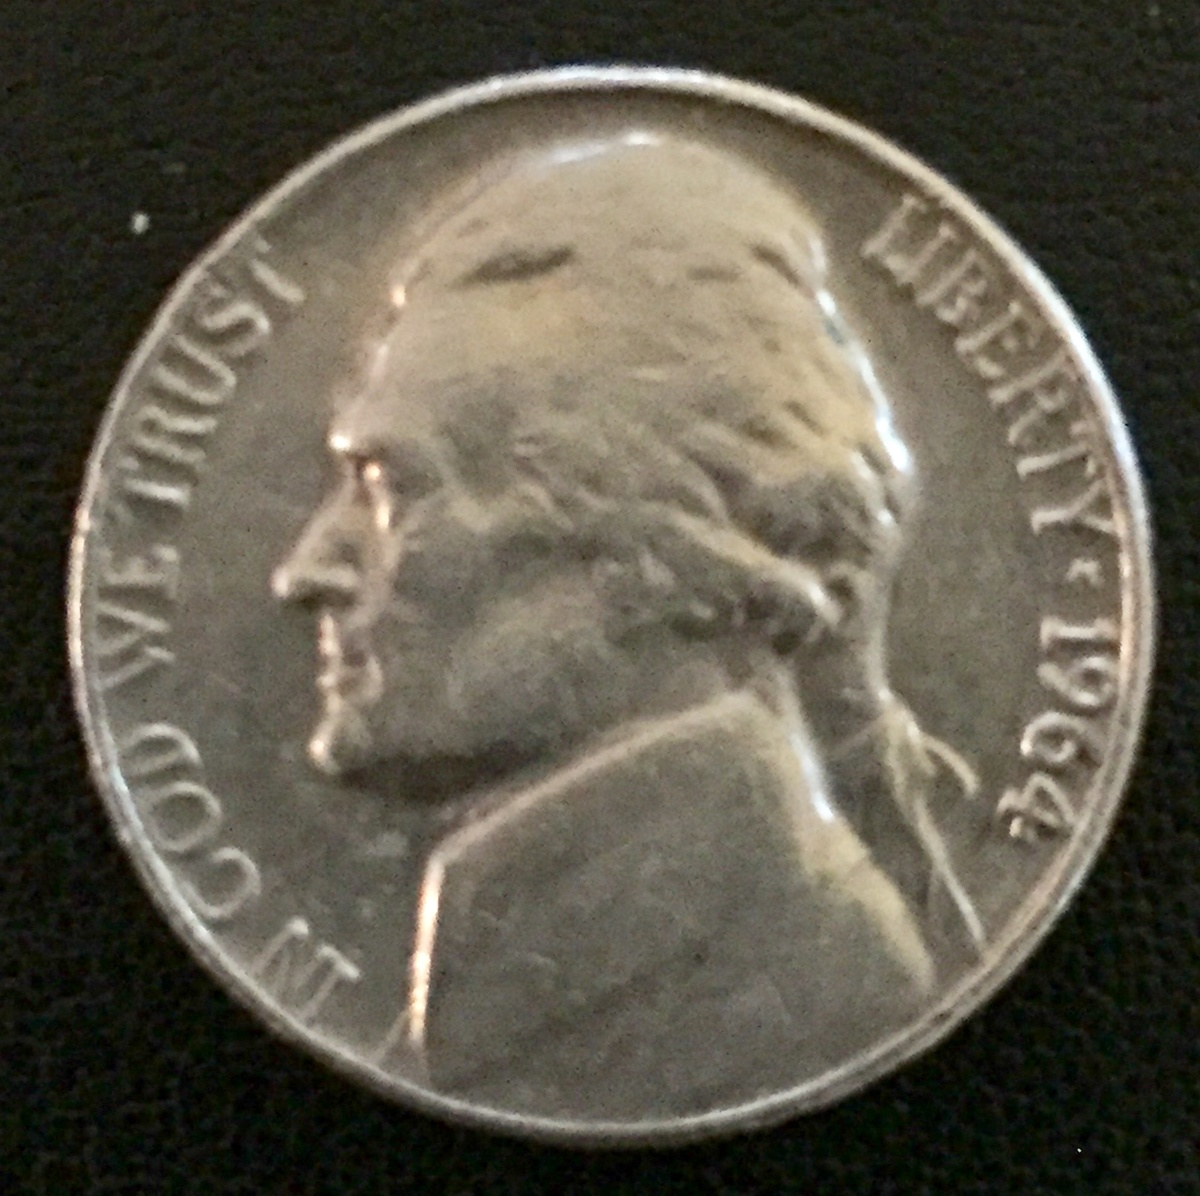 1964 Jefferson Nickel no mint mark need information | Collectors Weekly